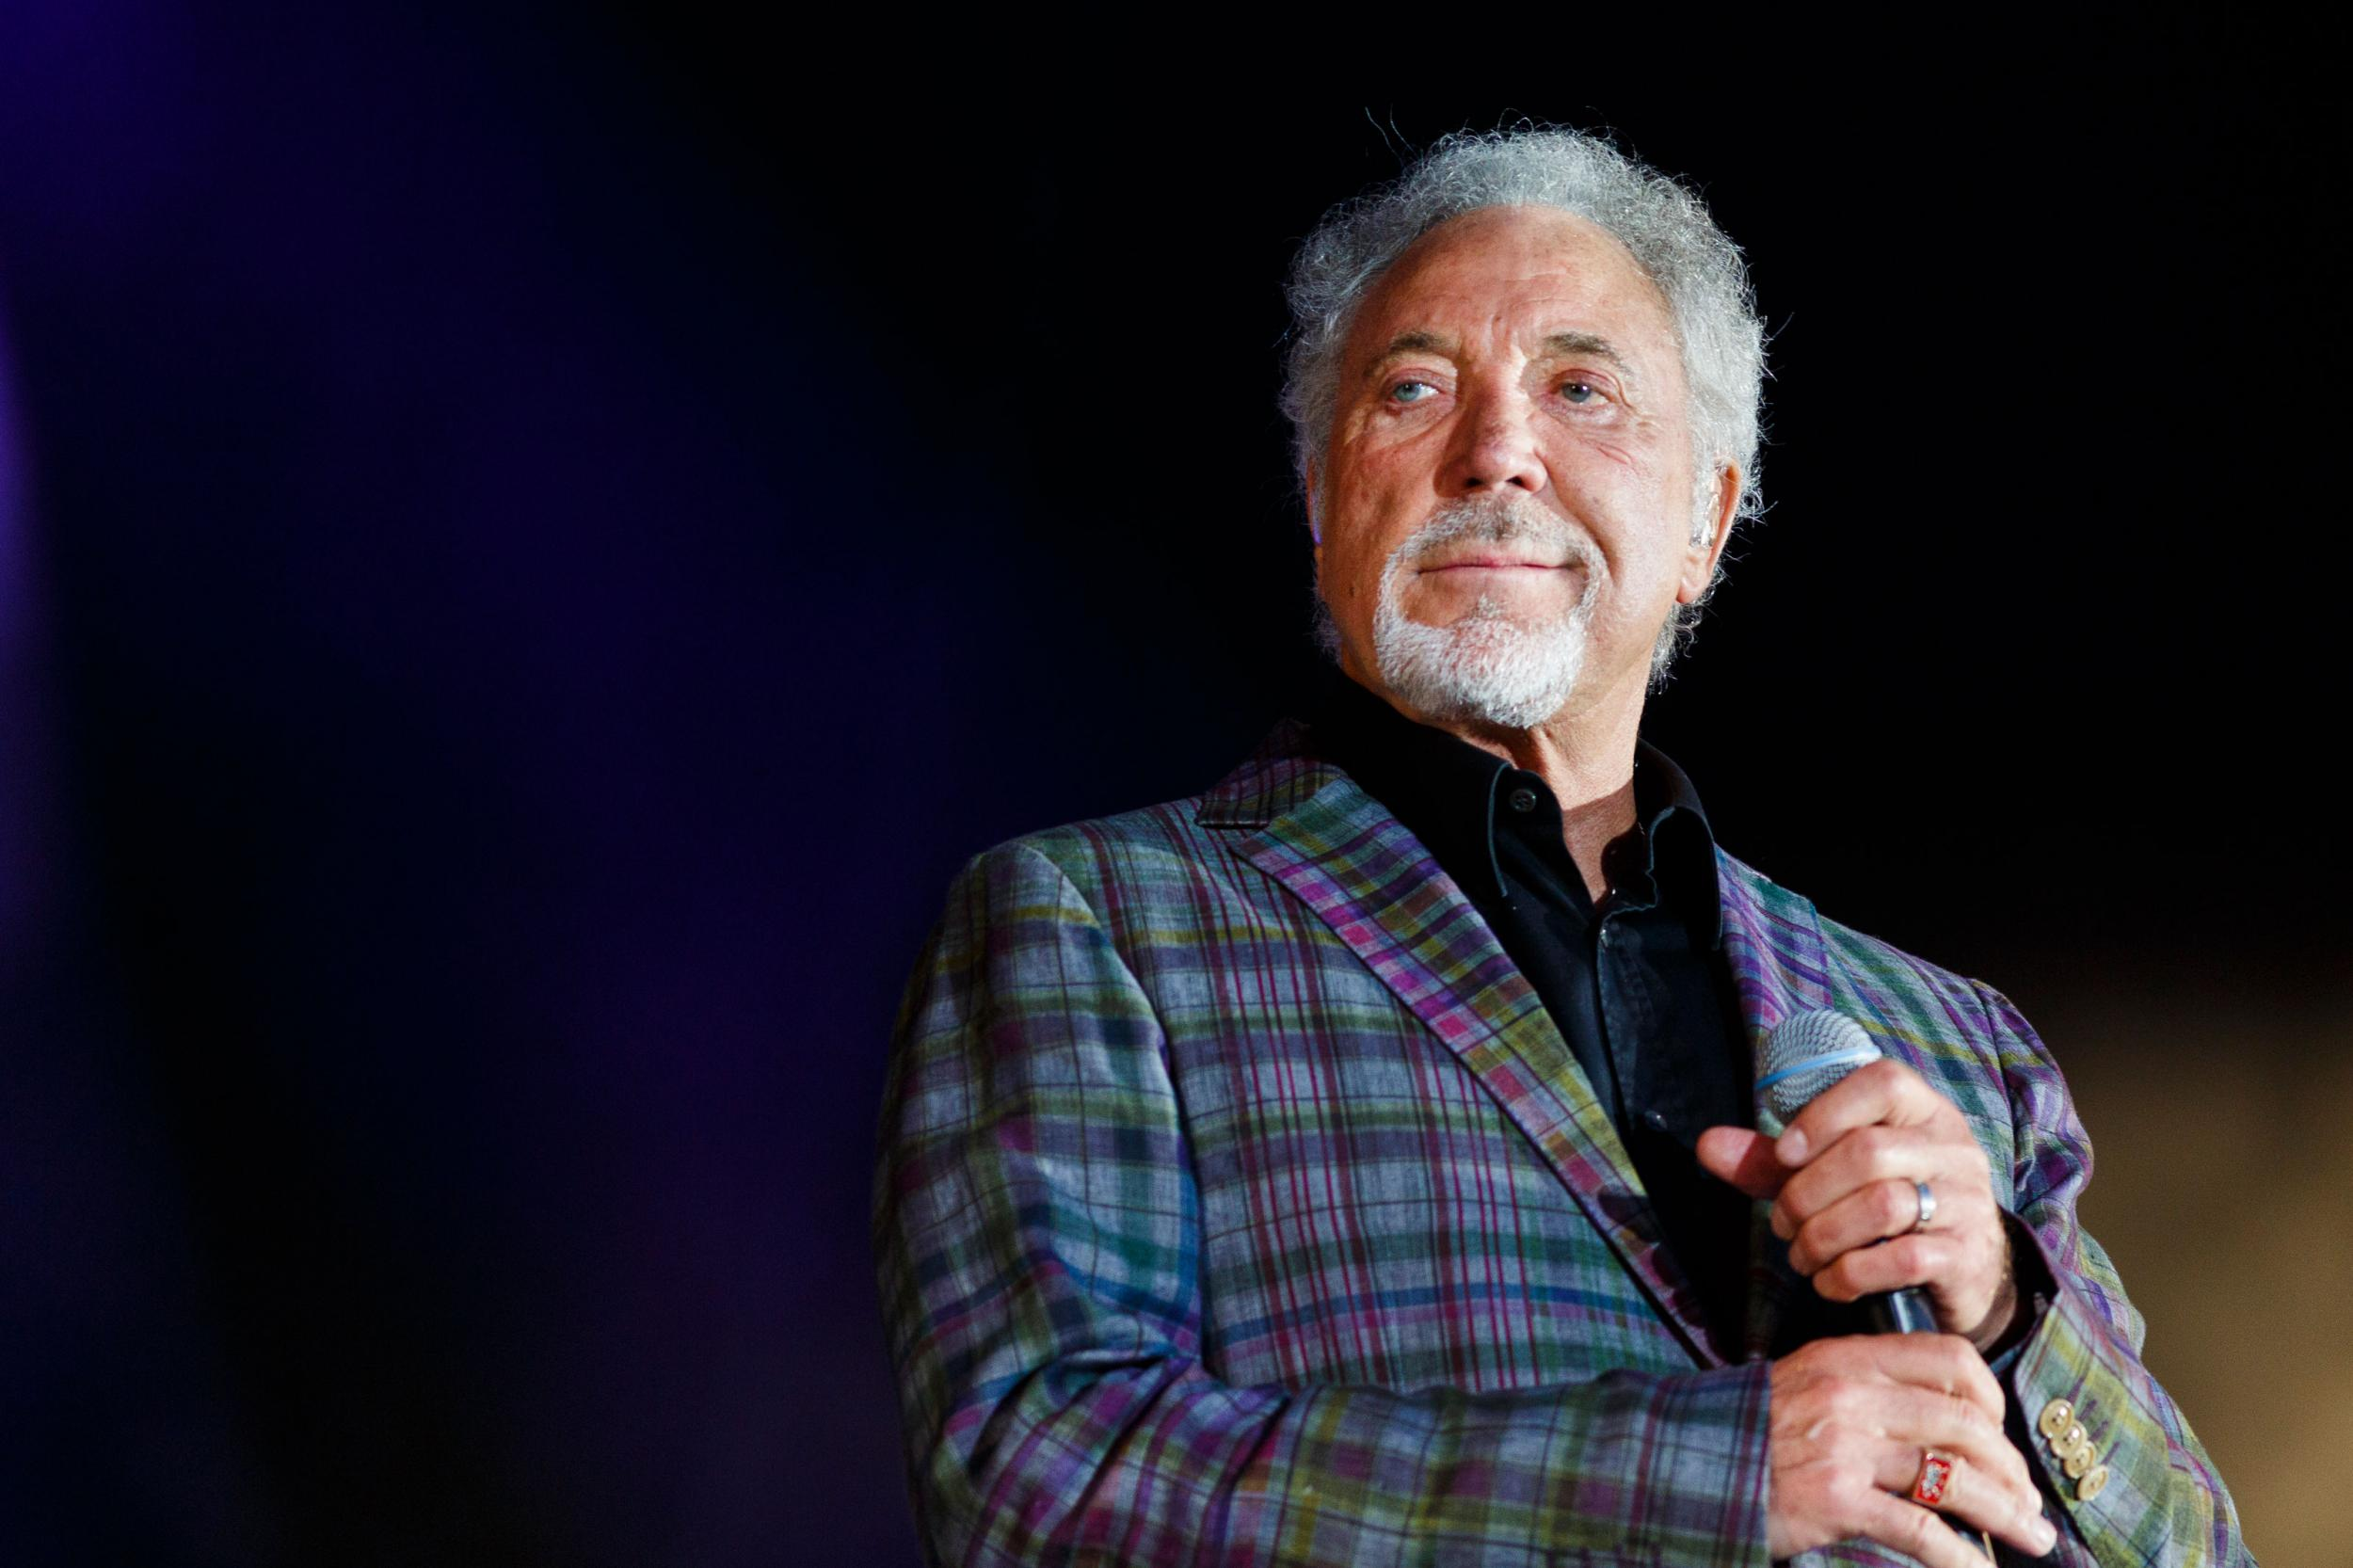 Tom Jones in a stage wearing a coat. He is gripping a mic in his hand